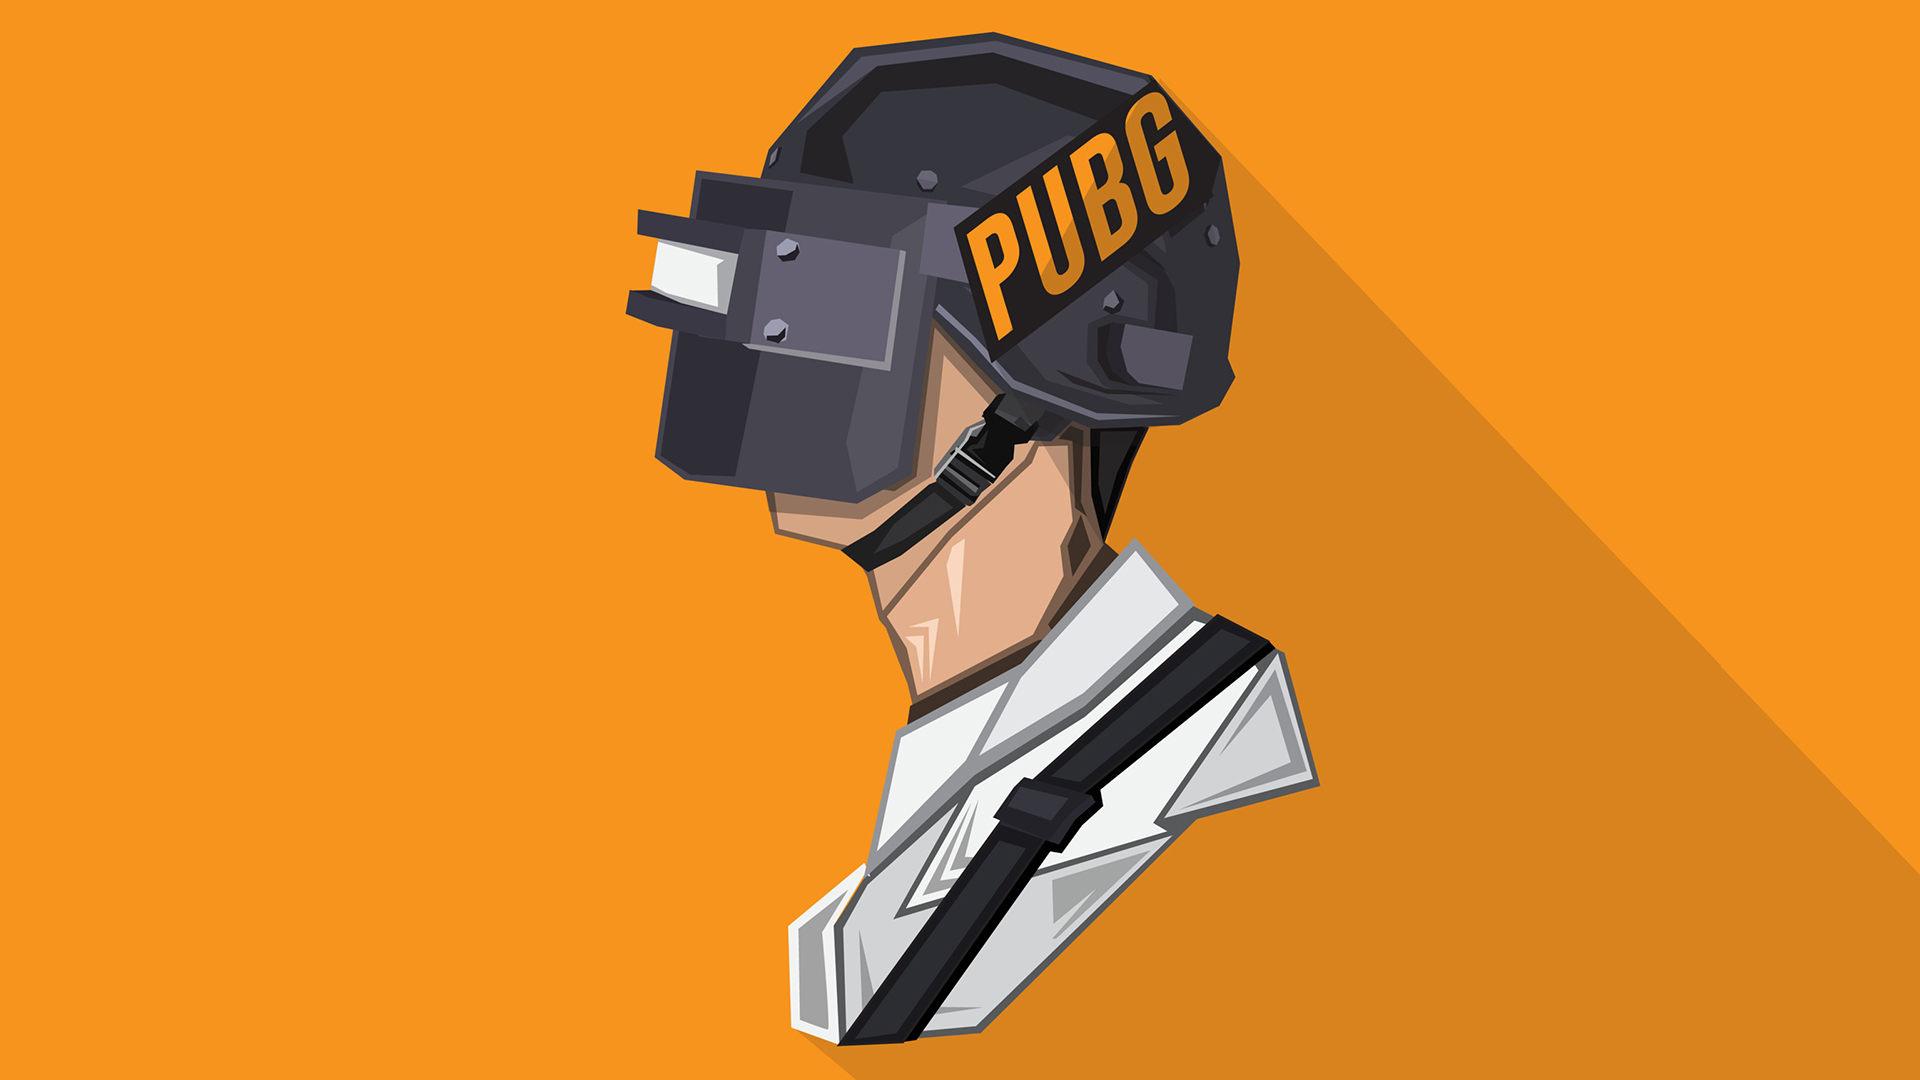 1366x768 Pubg Game Girl Fanart 1366x768 Resolution Hd 4k: Pubg Minimalist Pophead, Full HD Wallpaper